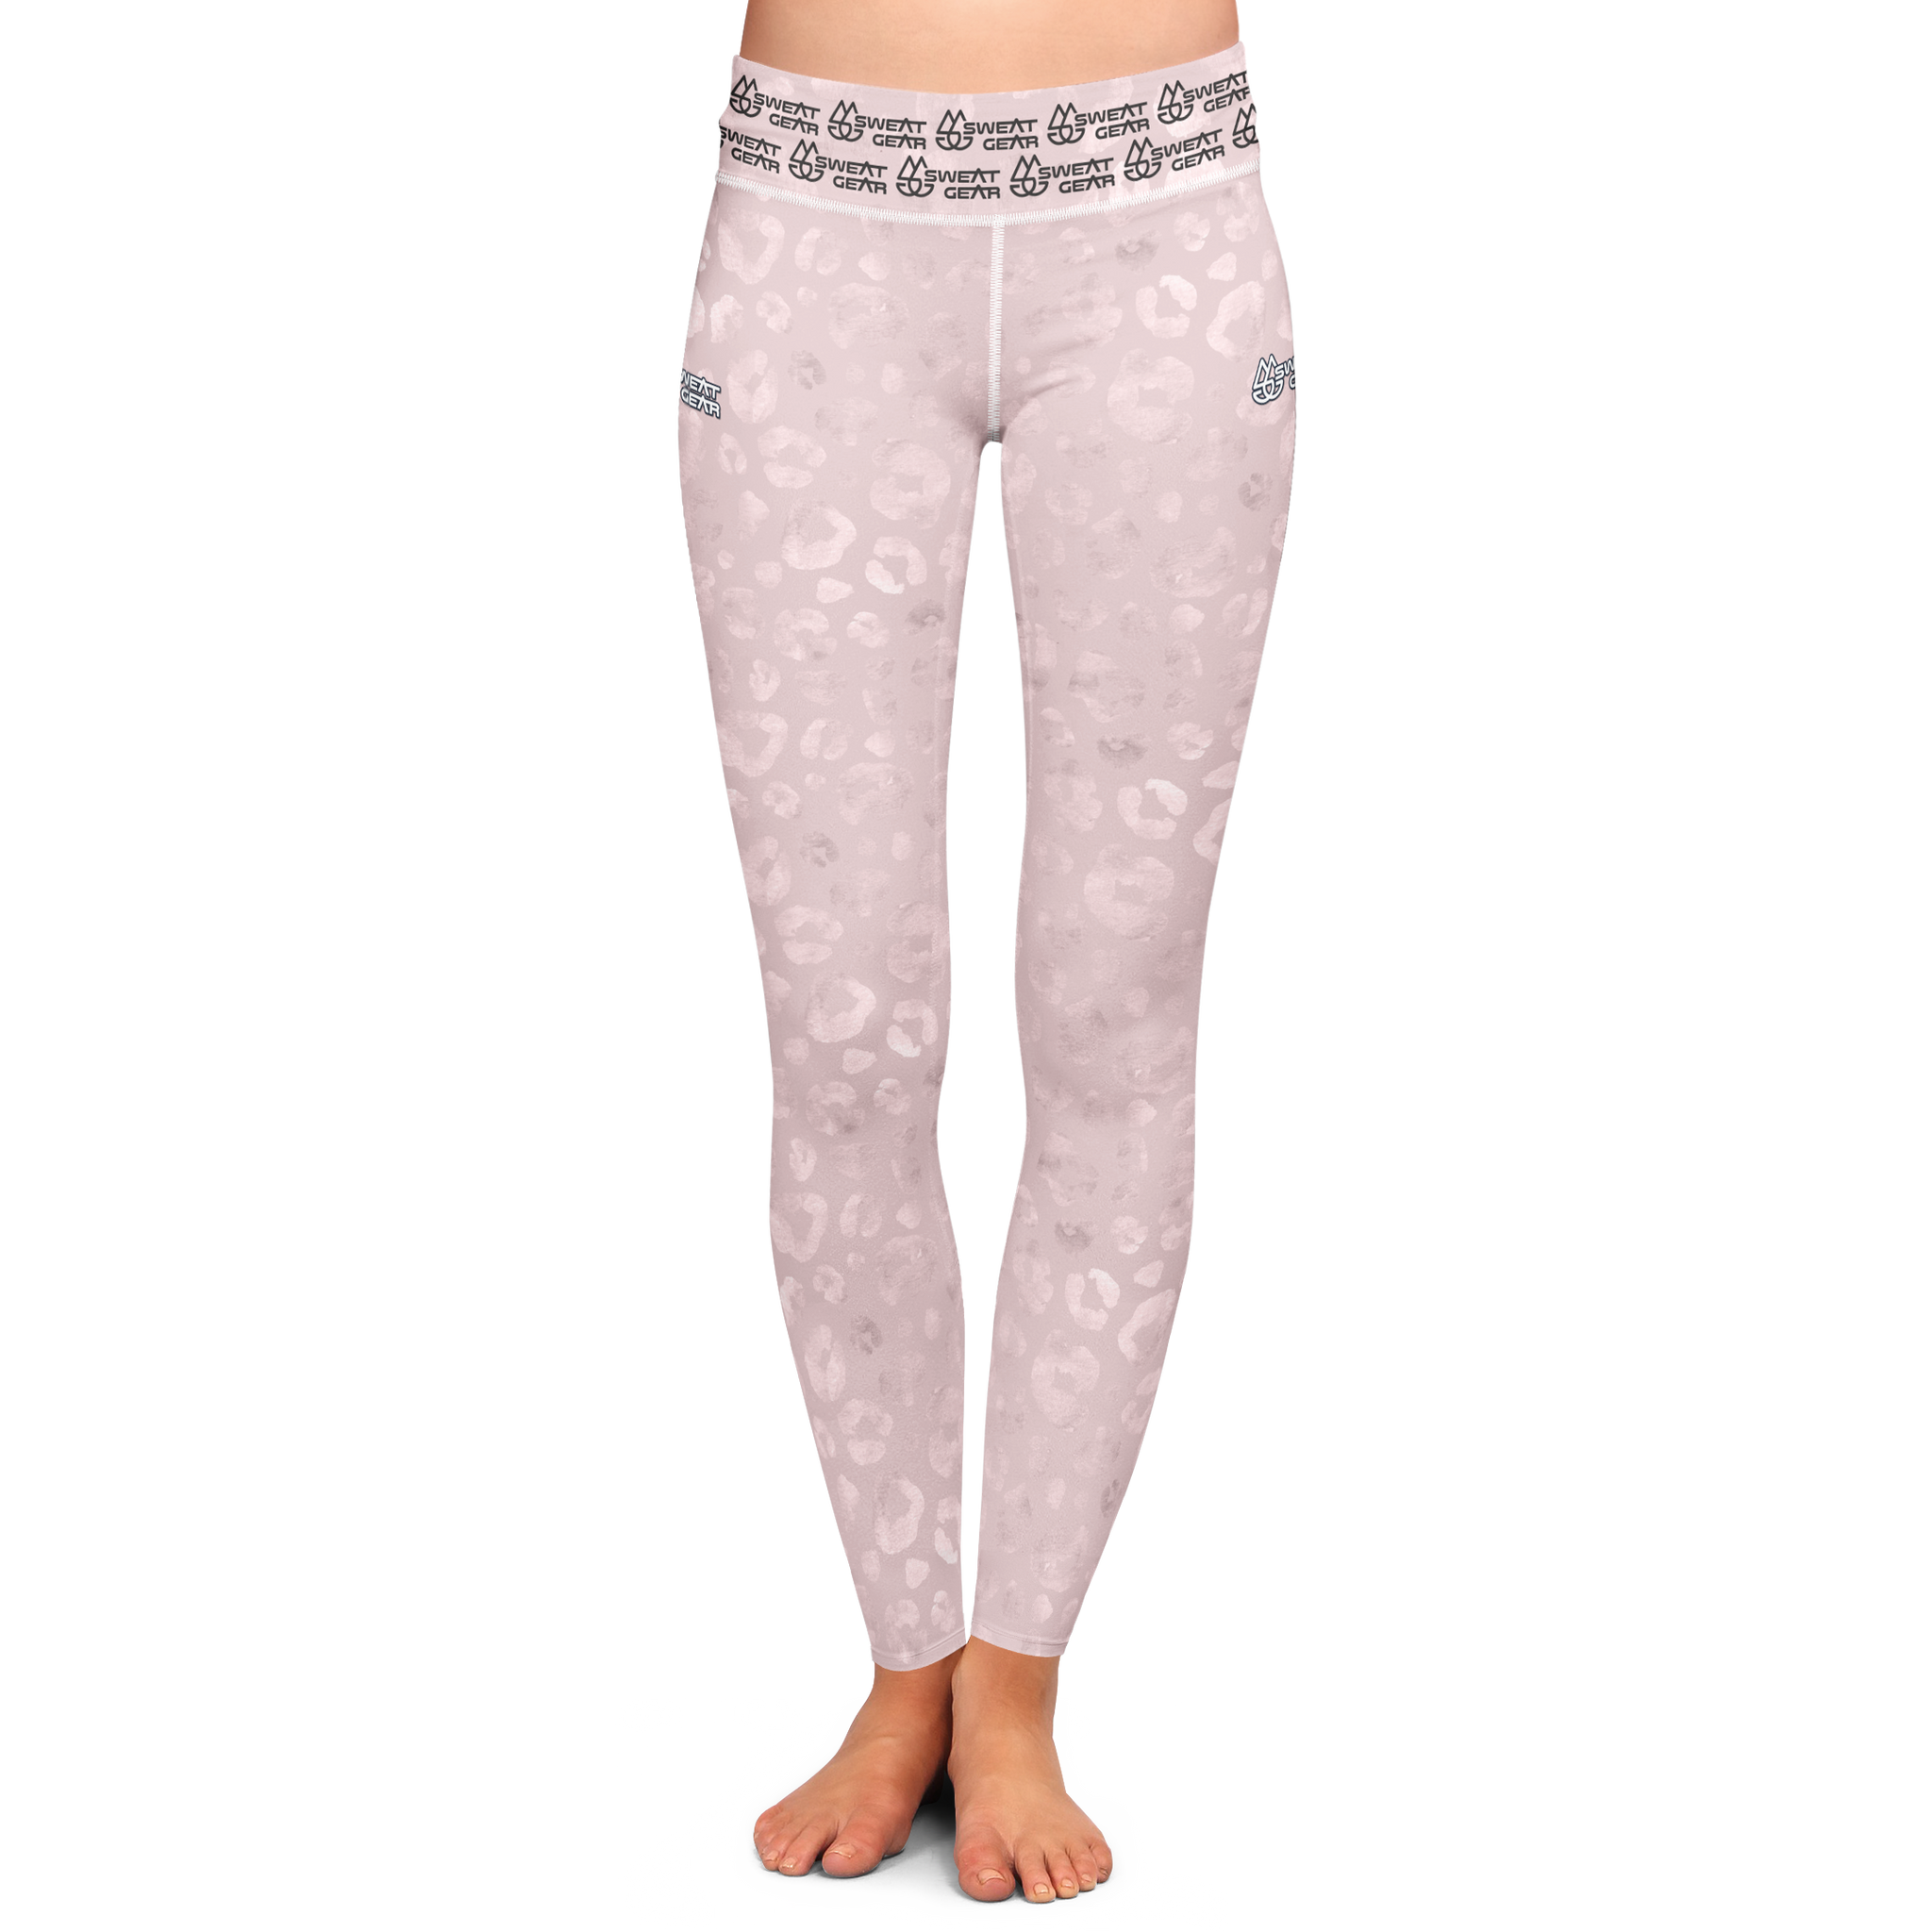 Marble Leopard Tight (Sweatgear)